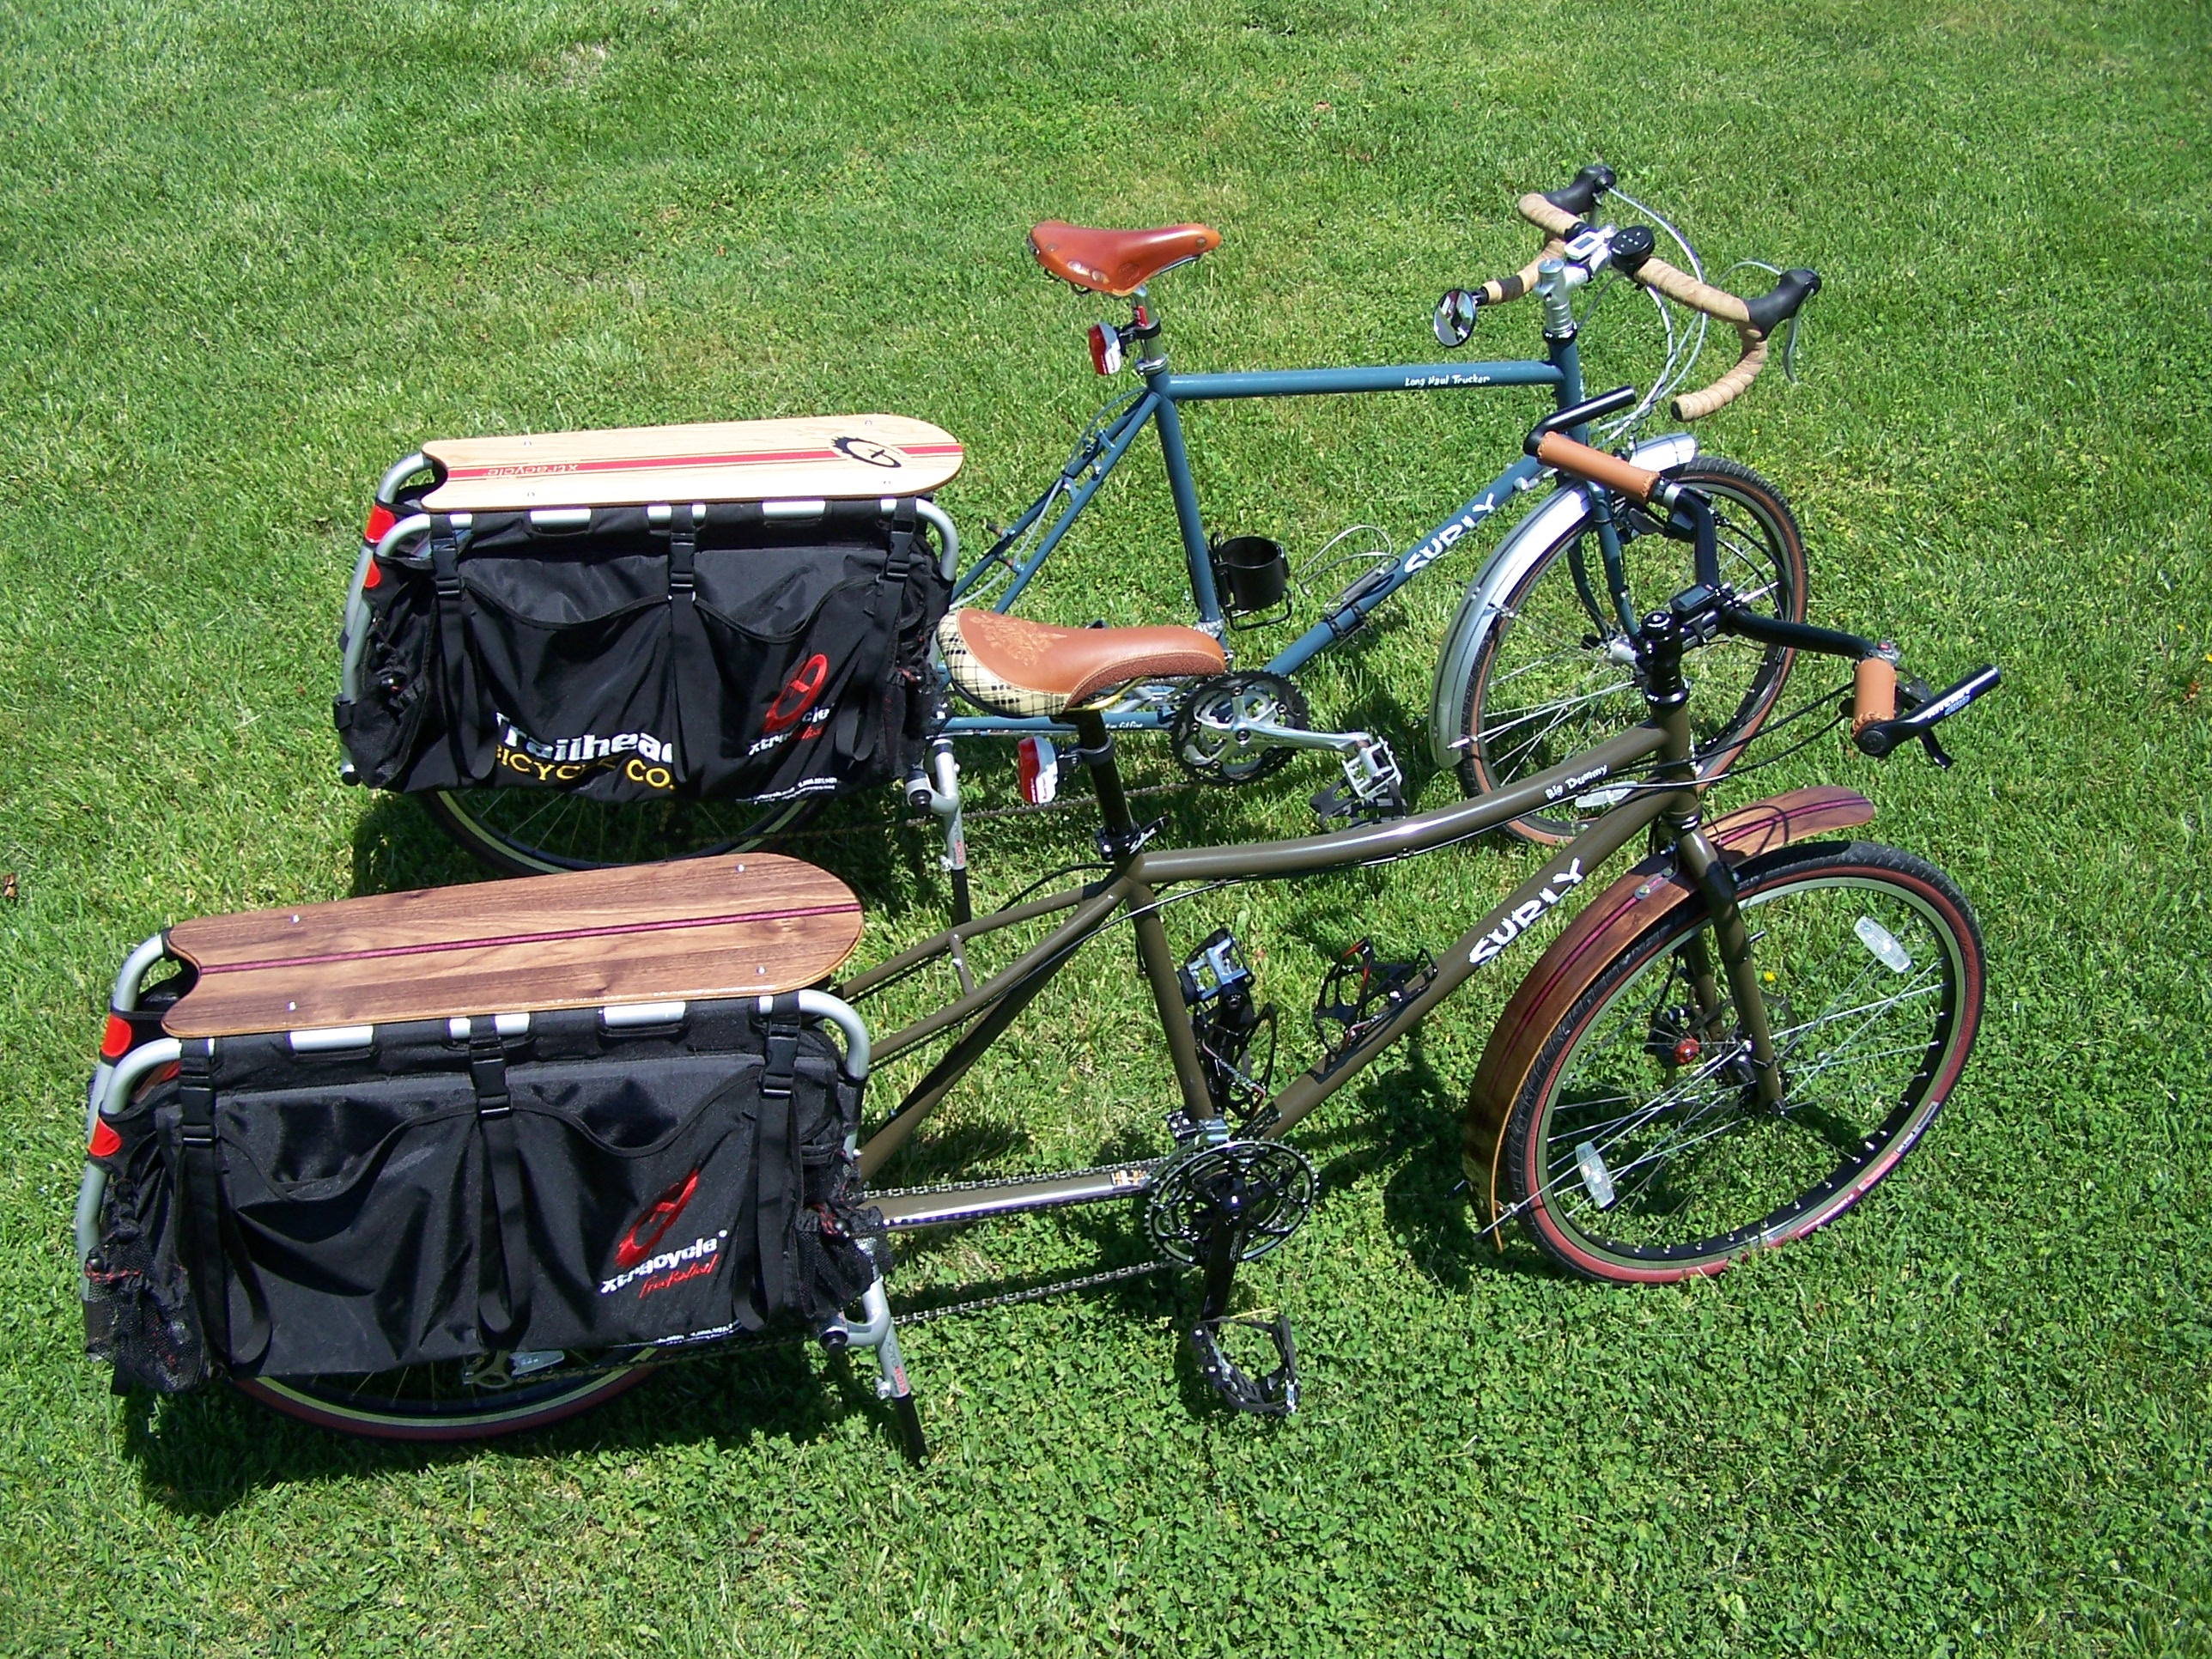 ... the only thing more fun than an Xtracycle: two Xtracycles!